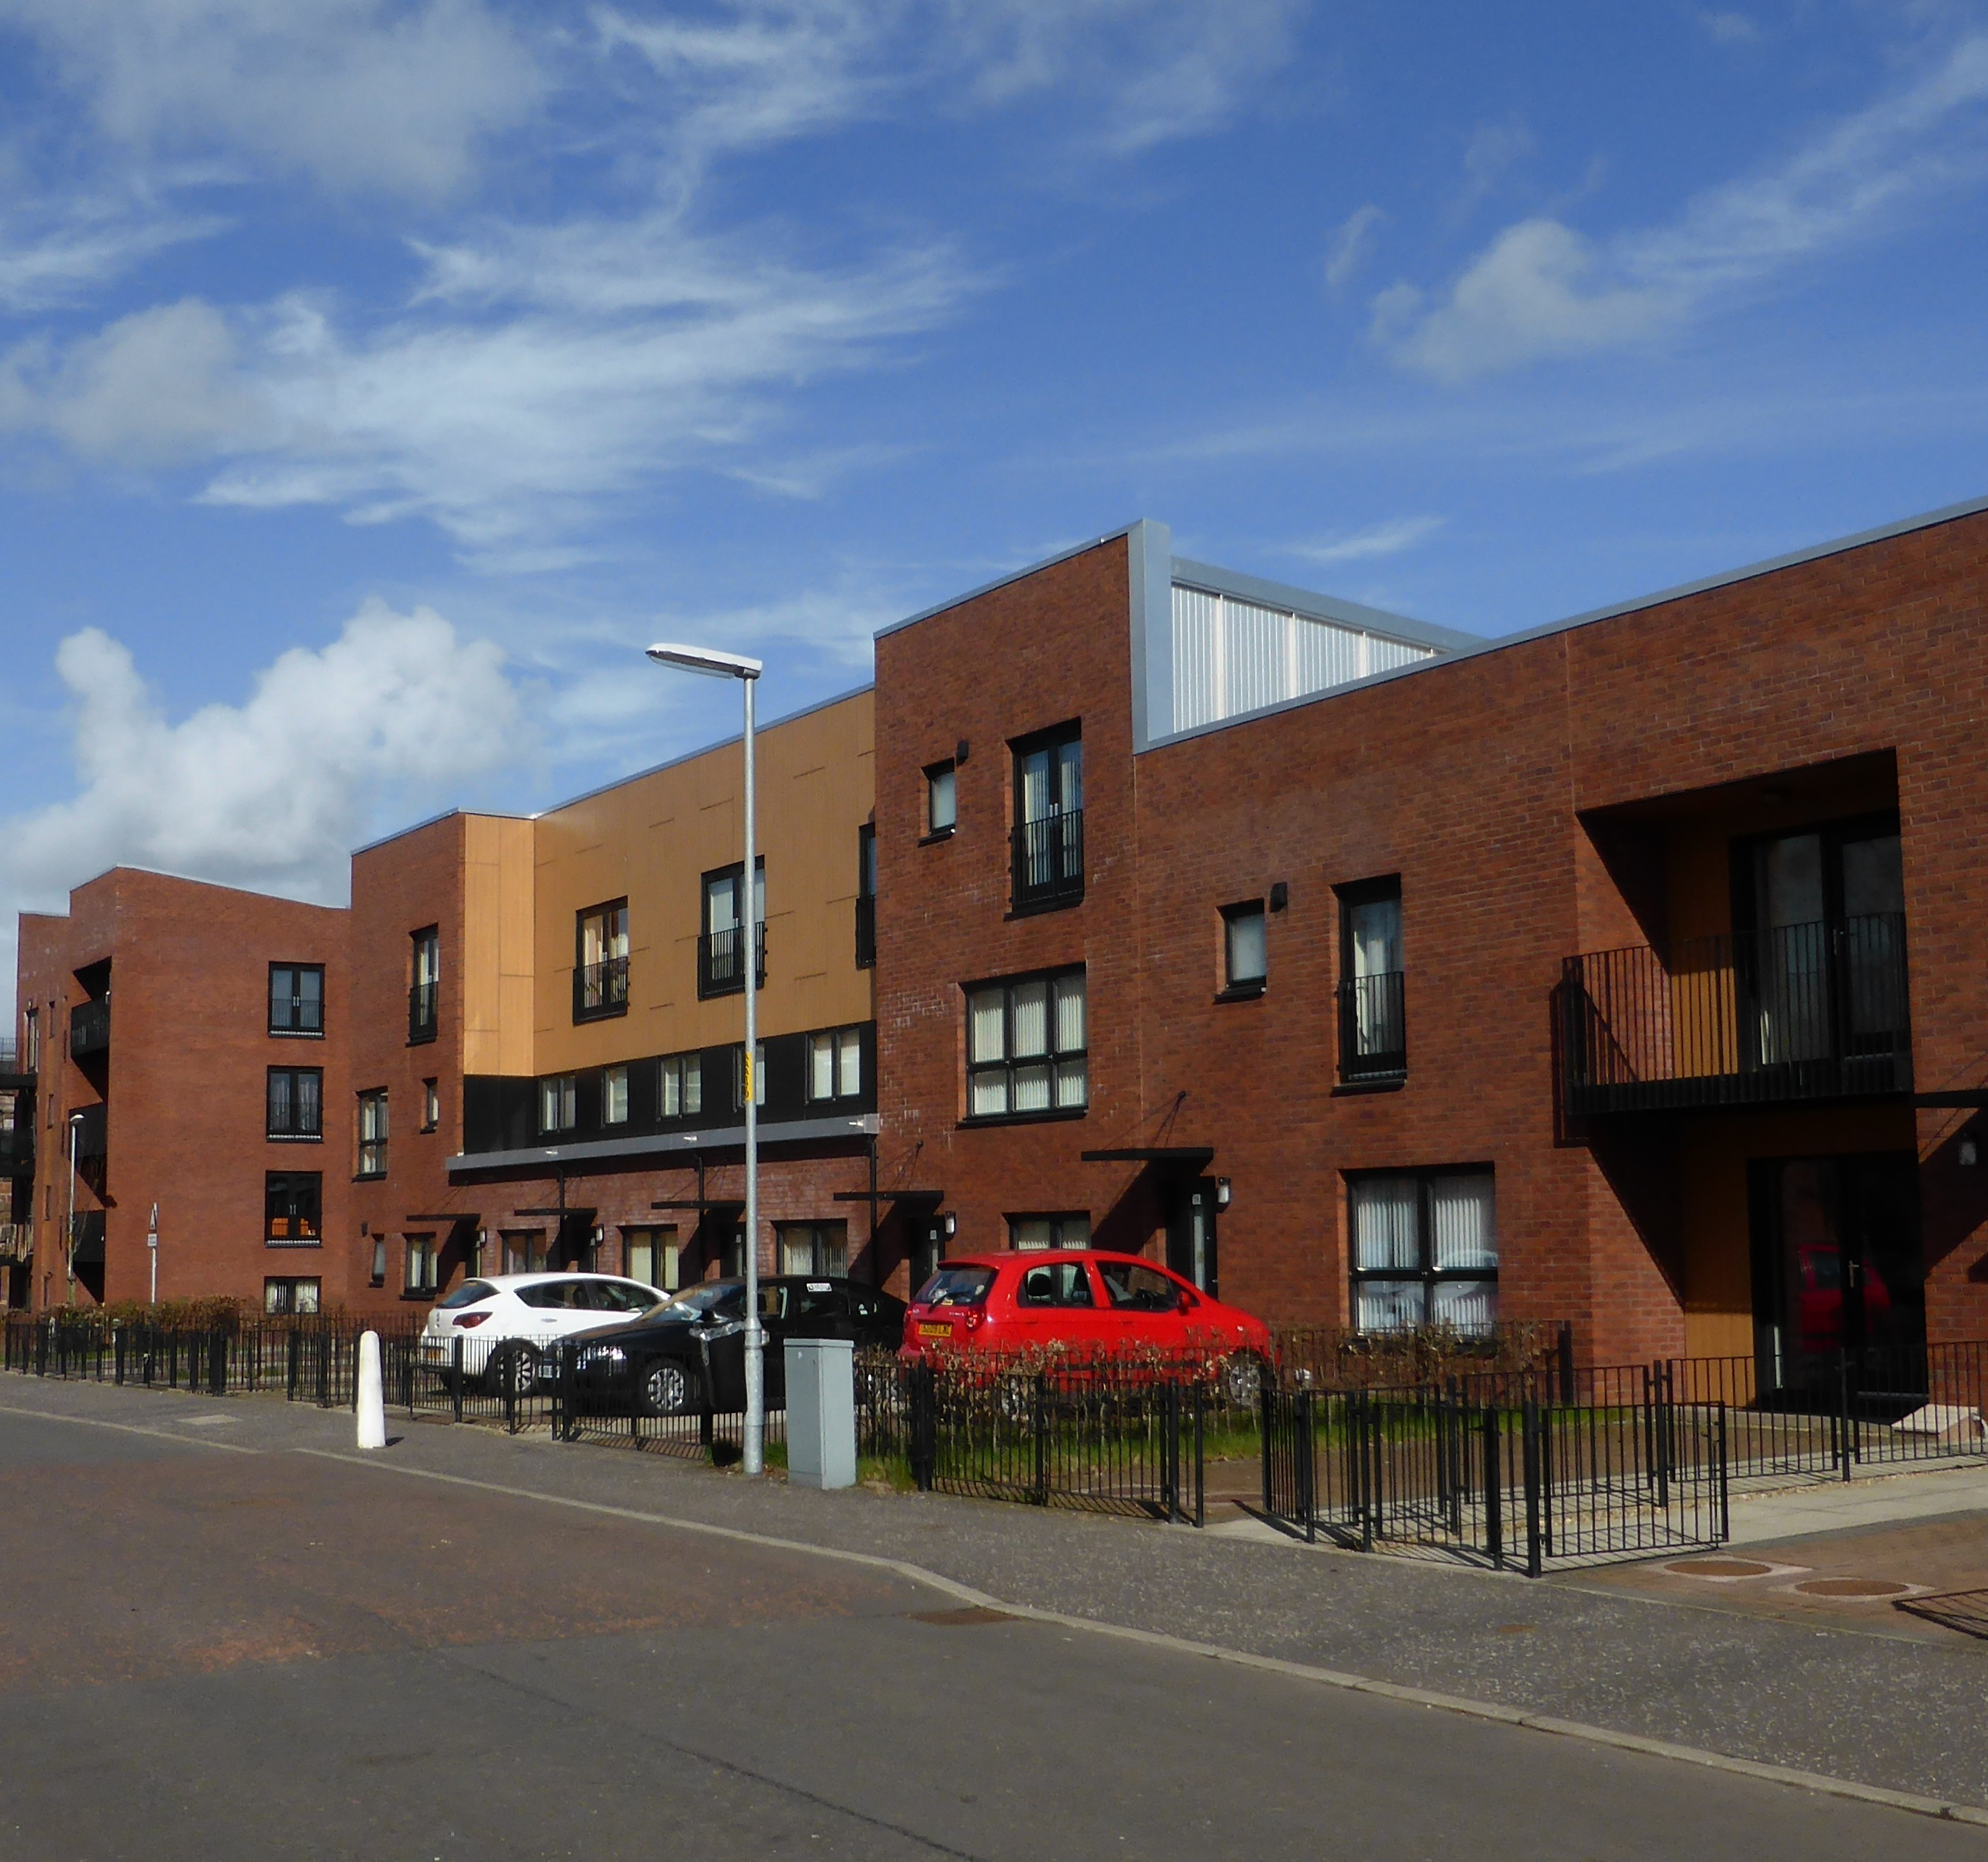 Road with blocks of flats in red brick with railings and cars outside